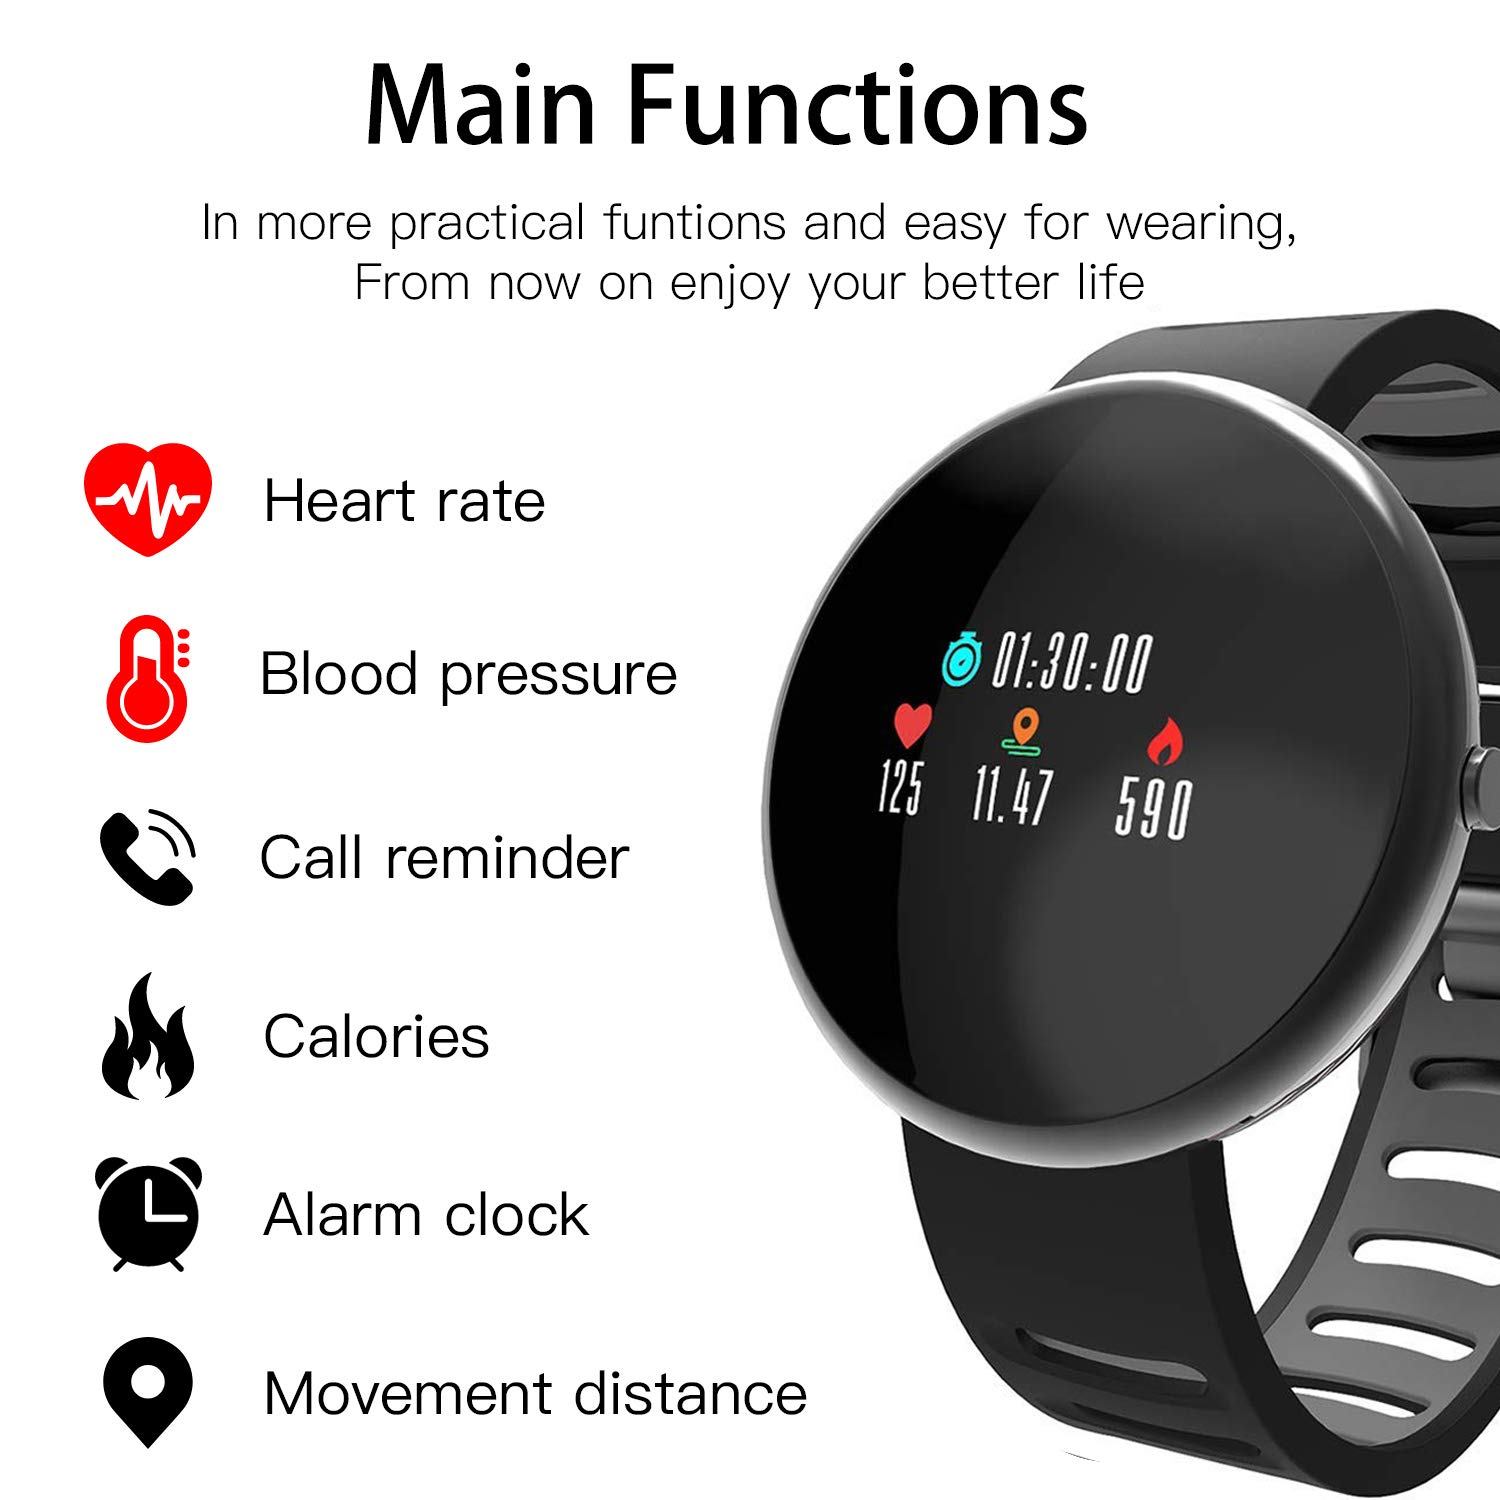 LATITOP Smart Fitness Tracker Watch with Heart Rate Monitor and Blood Pressure Monitor, 2.5D Color Screen IP67 Waterproof Activity Tracker with Pedometer, Calorie Counter, Sleep Monitor (Black)